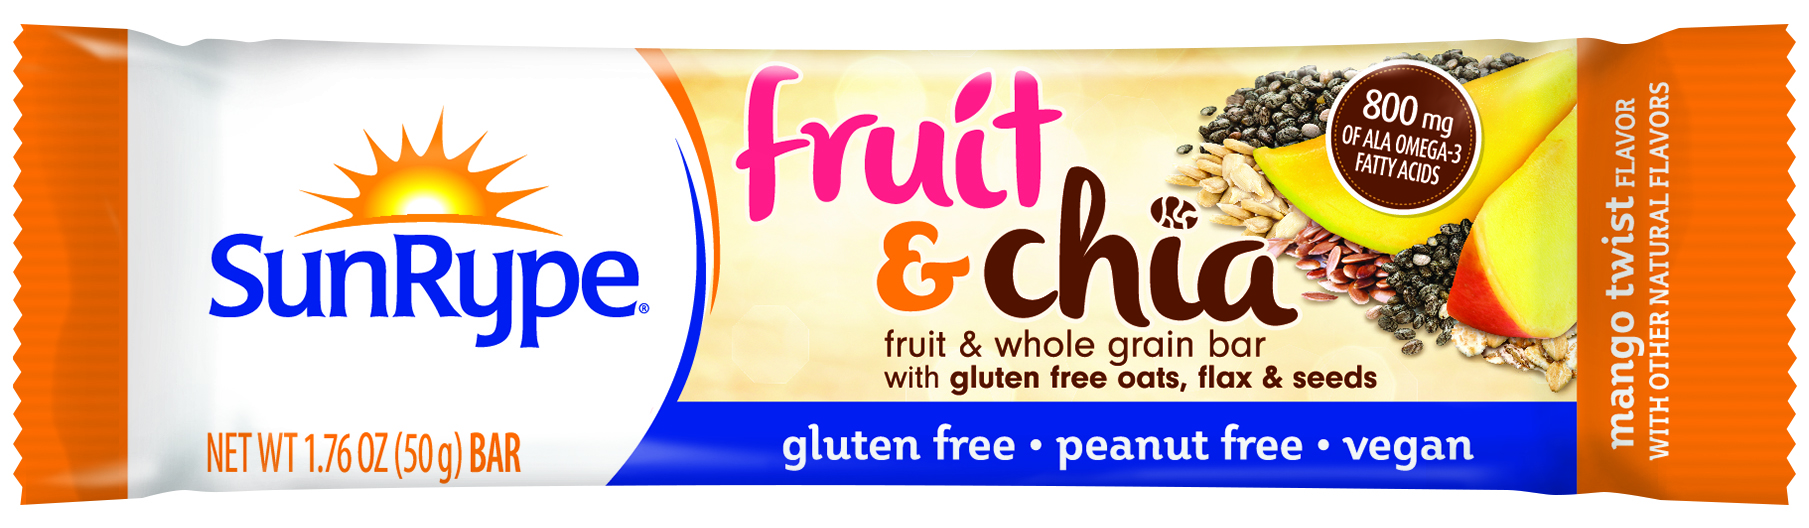 SunRype: Fruit & Chia - Fruit & Whole Grain Bar